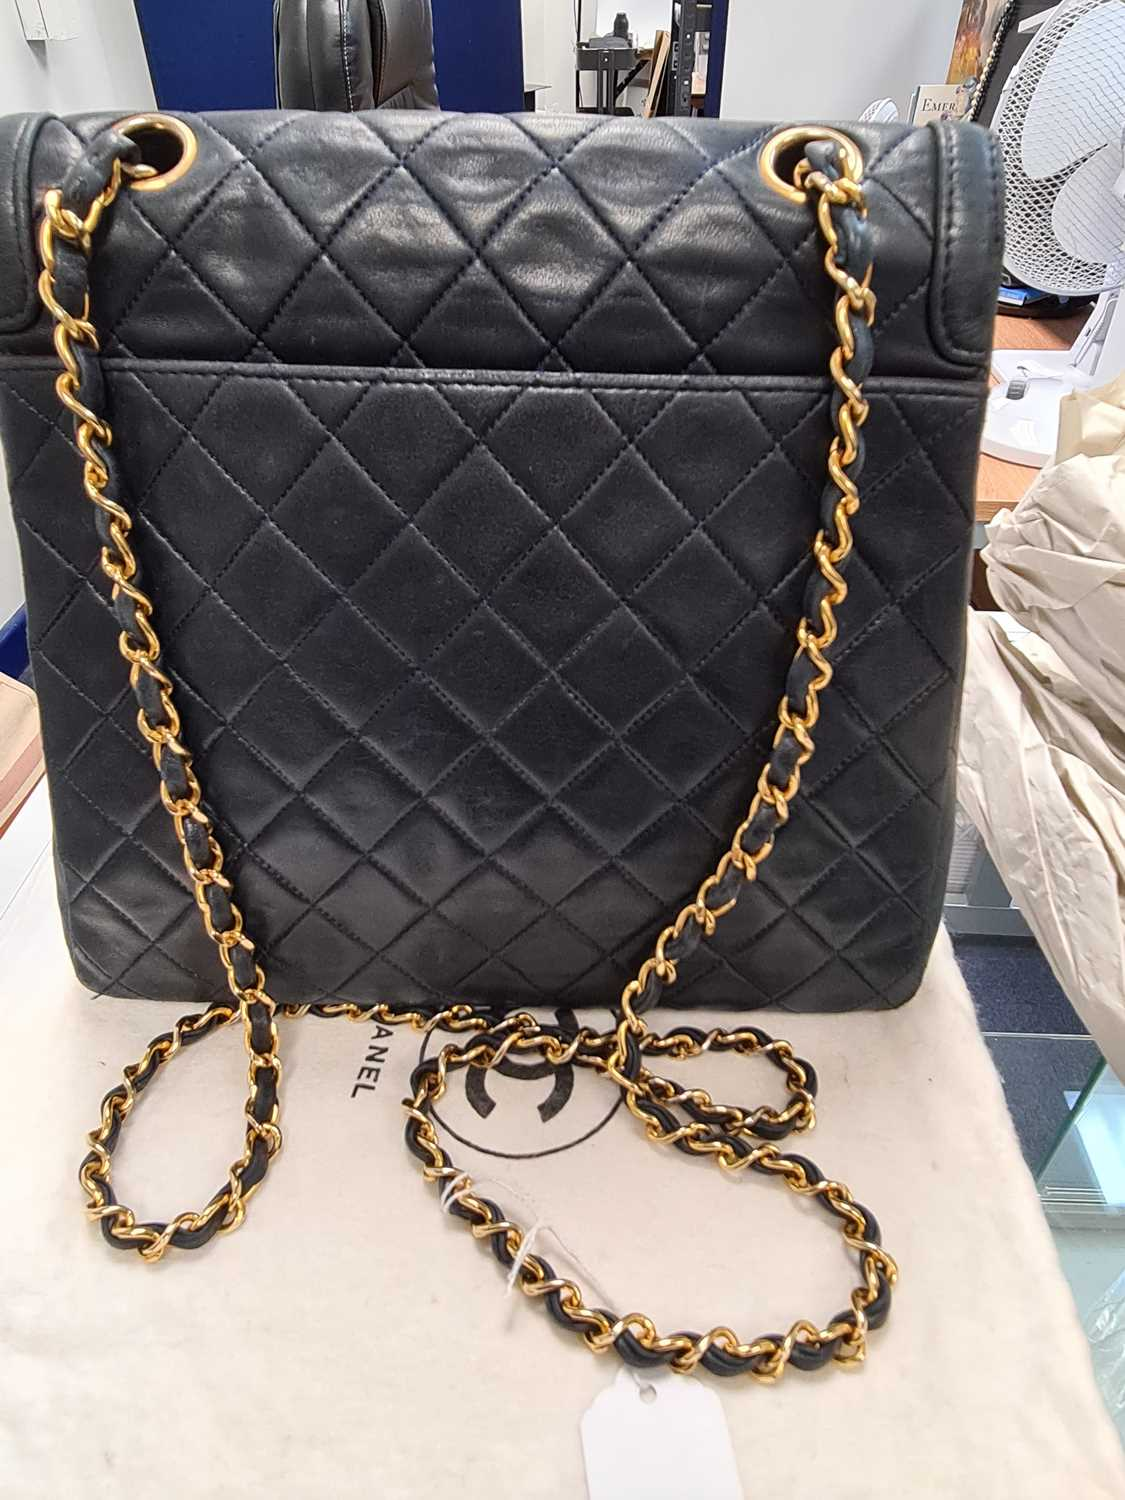 Chanel. A classic quilted leather handbag, of tapered square design, with gold tone CC logo clasp, - Image 15 of 26